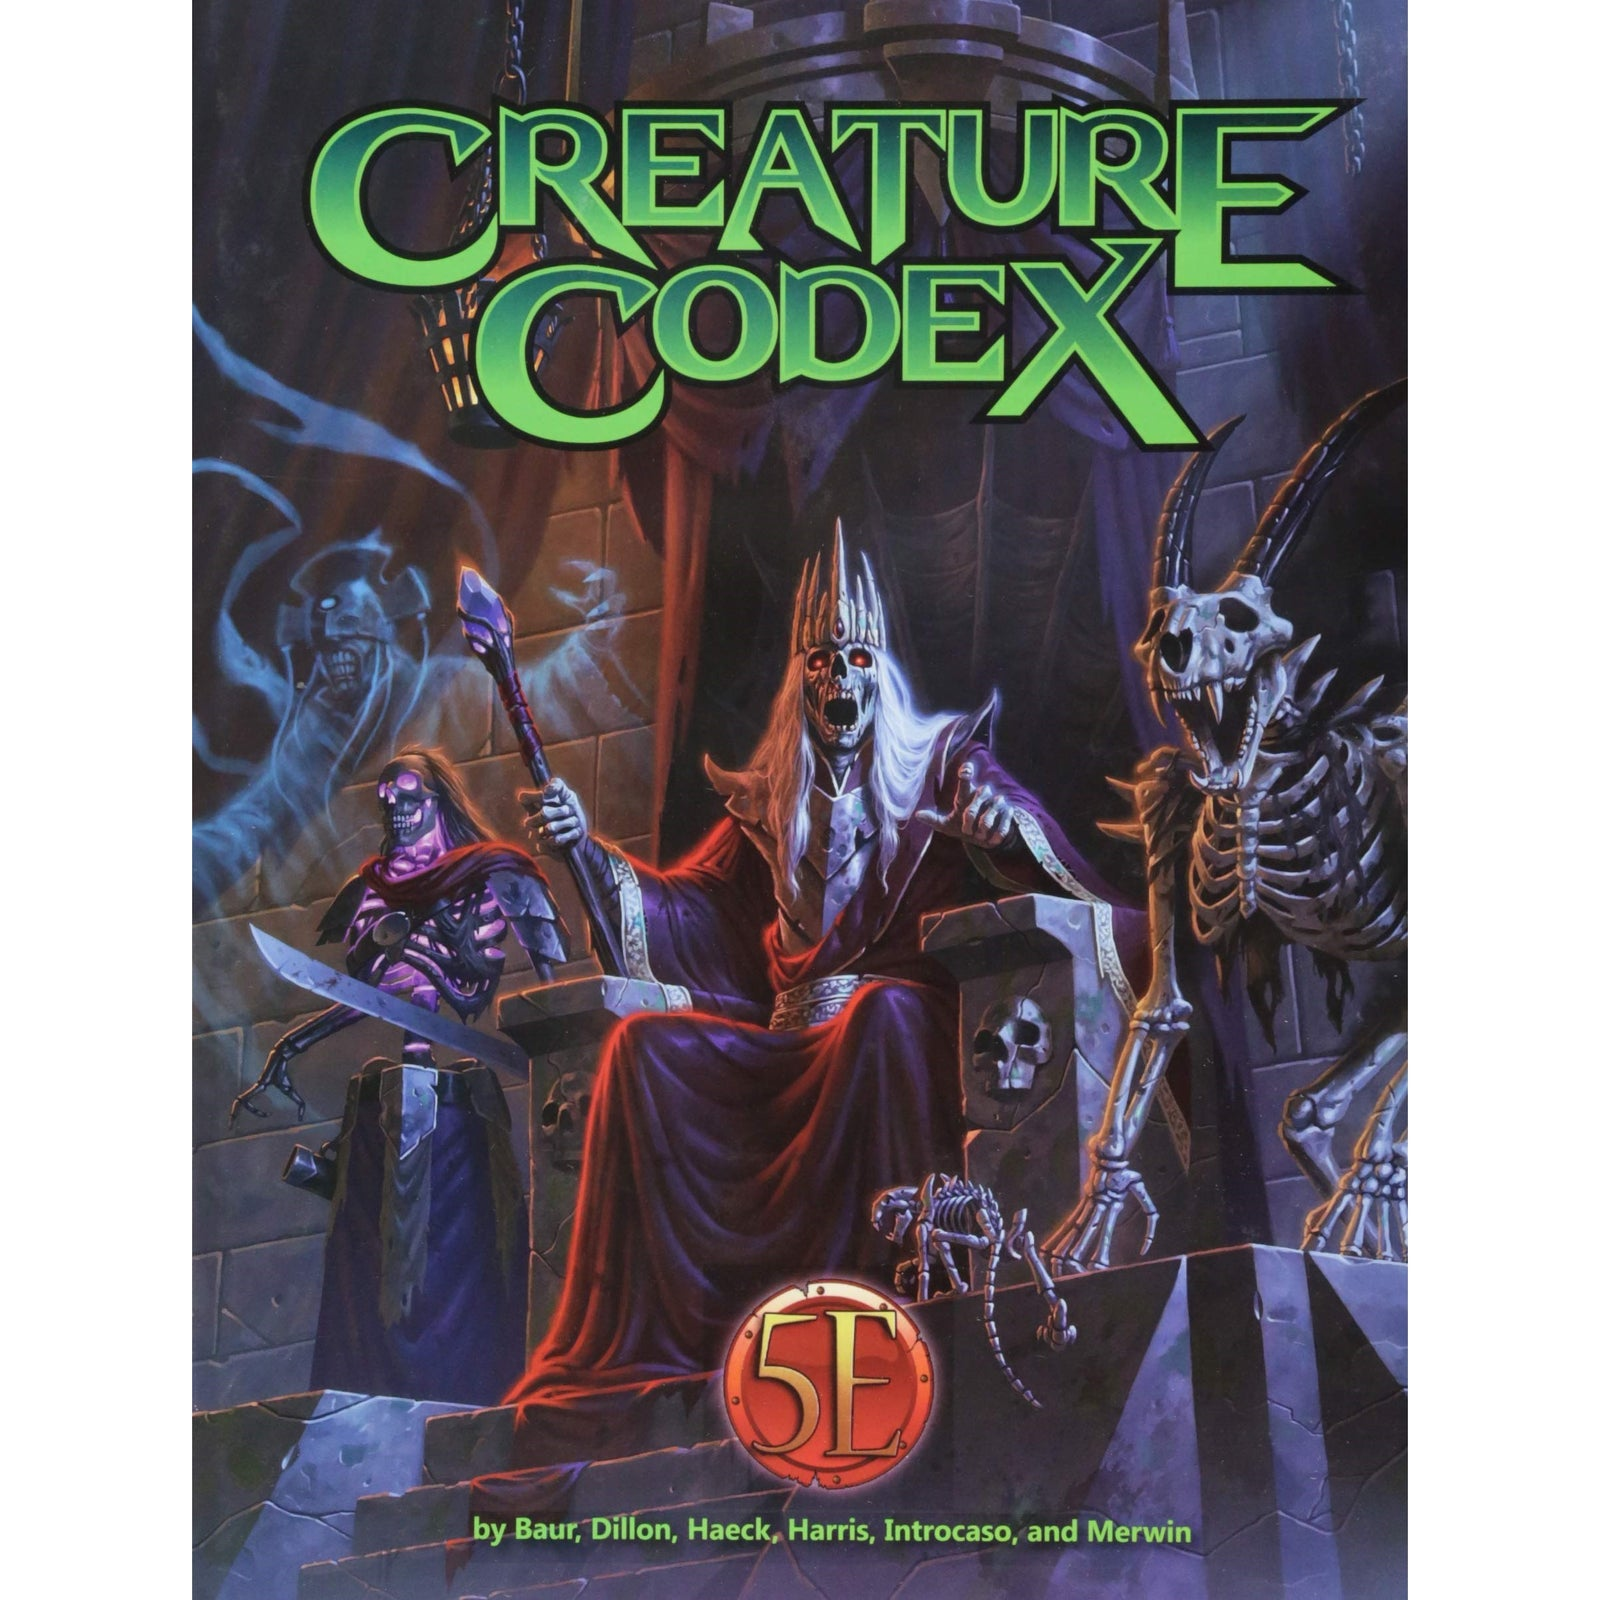 Creature Codex 5E